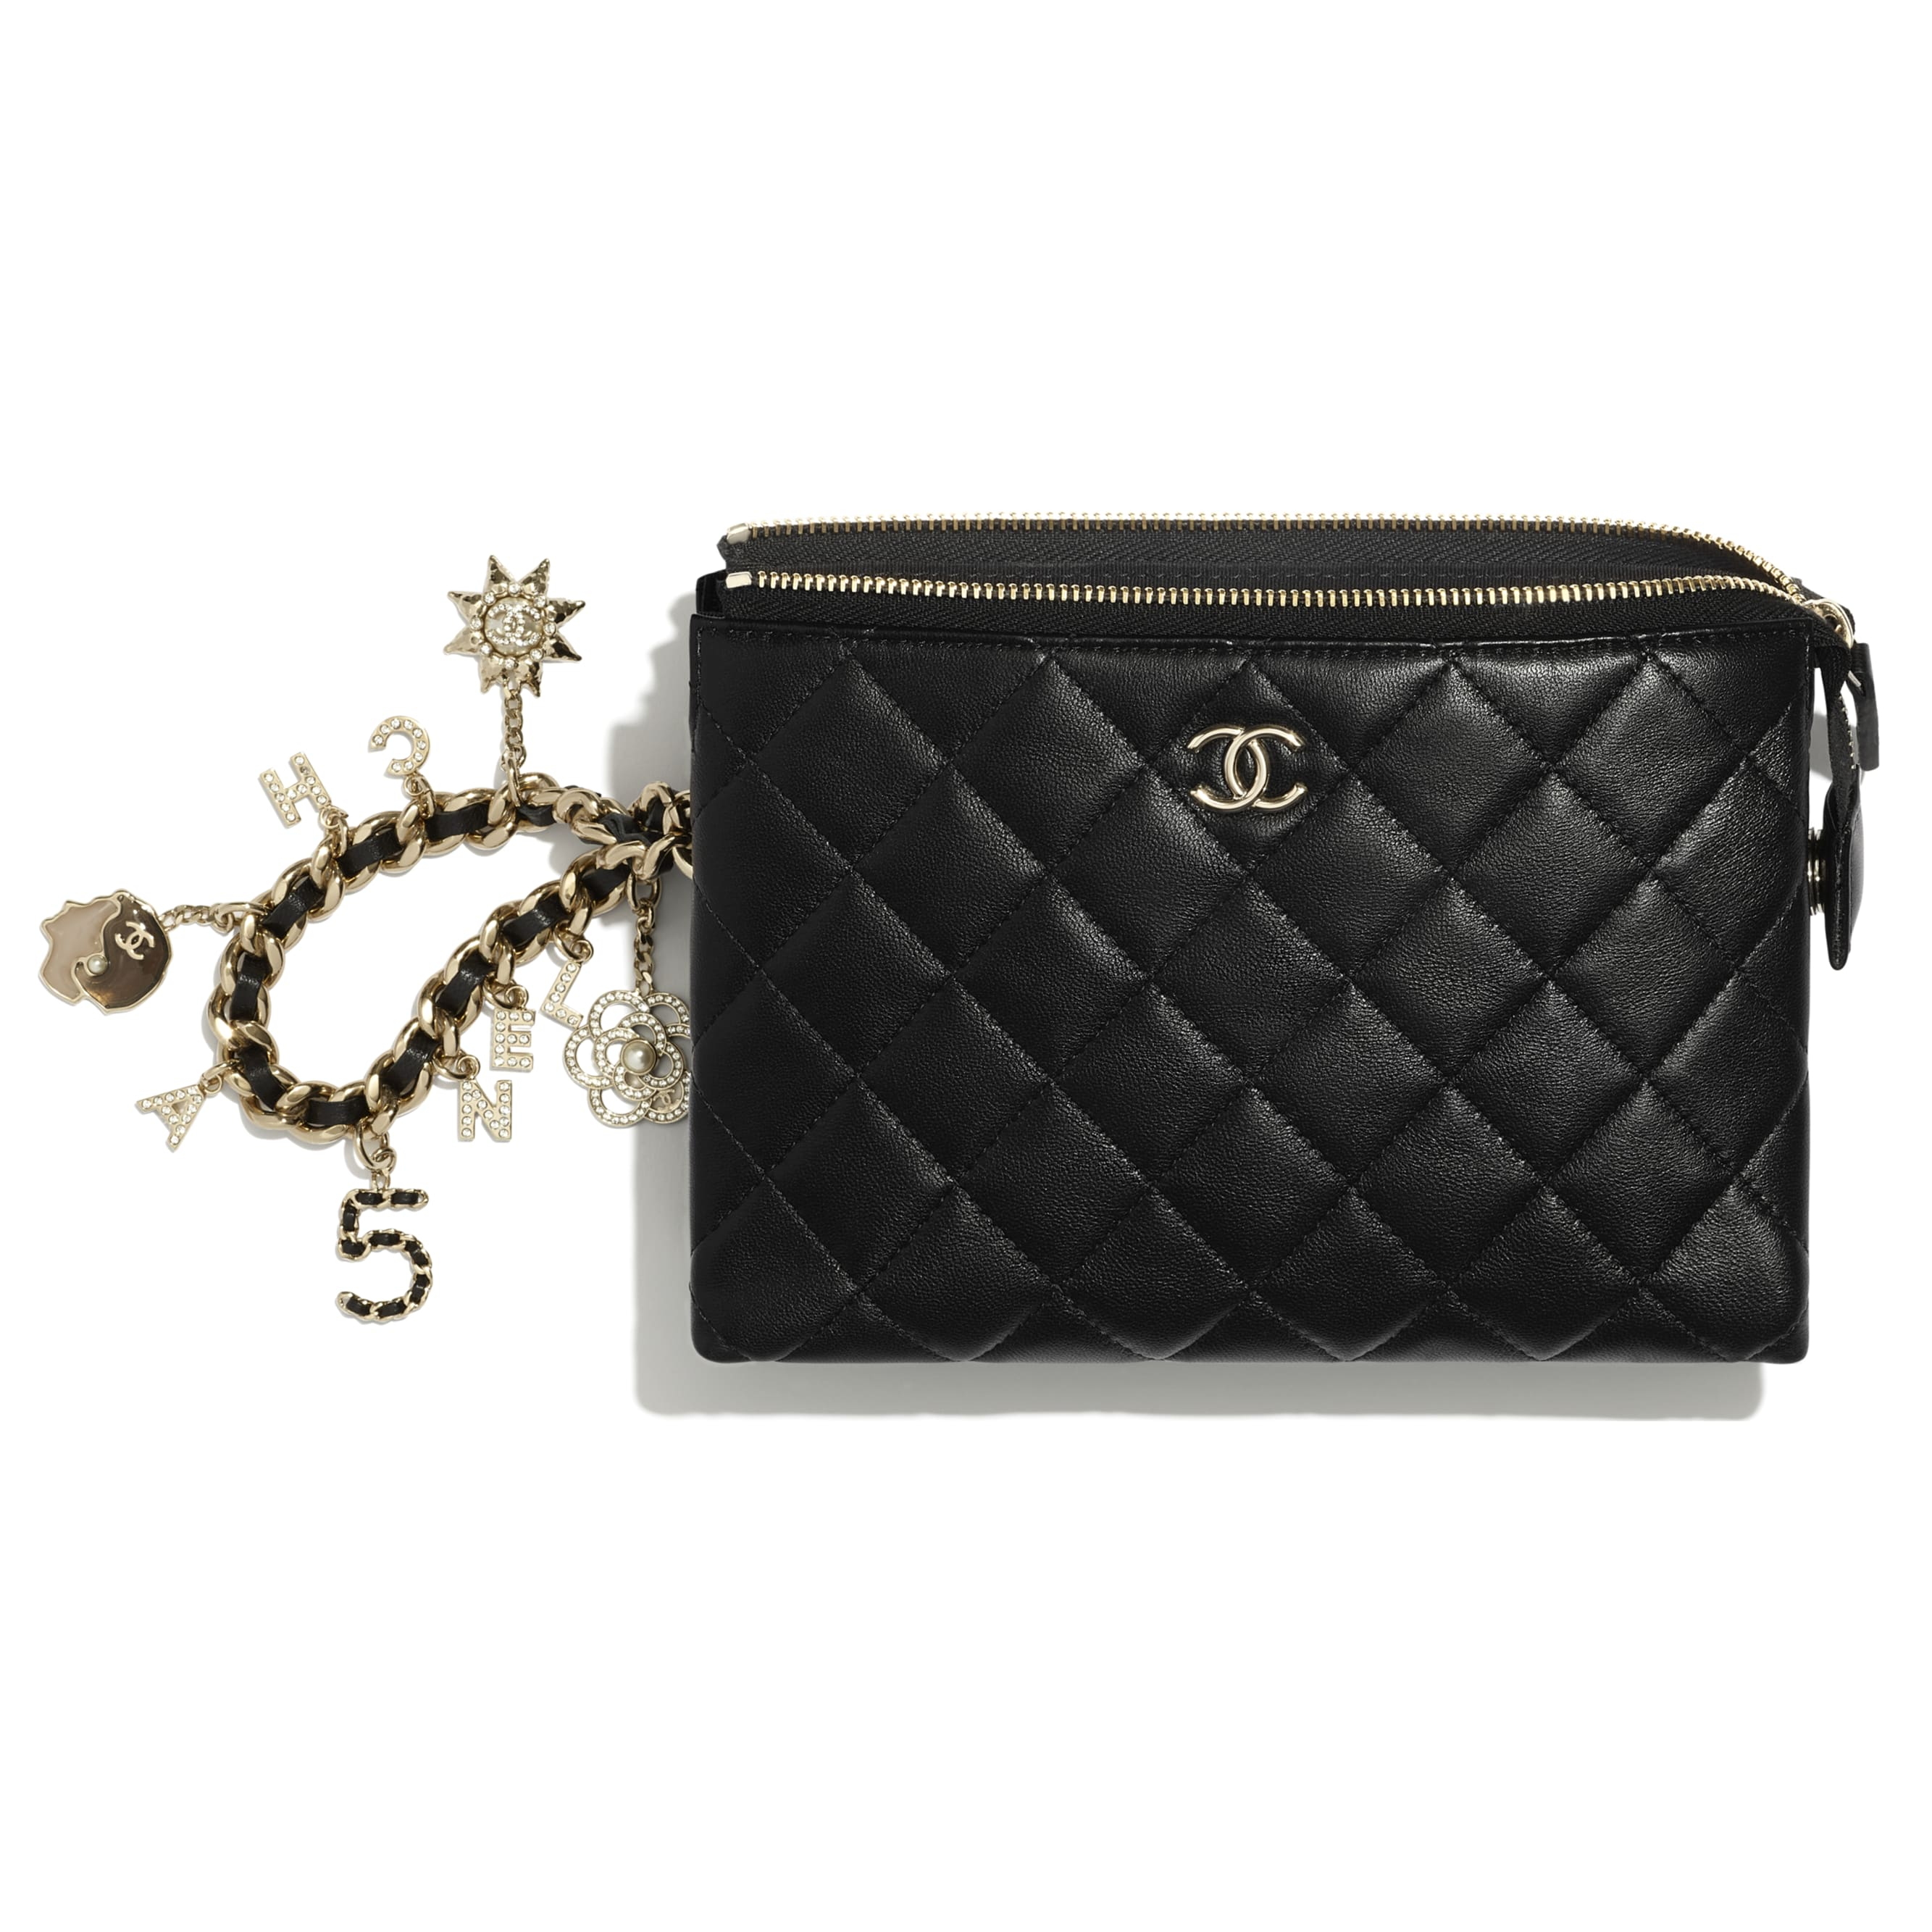 Pouch - Black - Lambskin, Charms & Gold-Tone Metal - CHANEL - Alternative view - see standard sized version